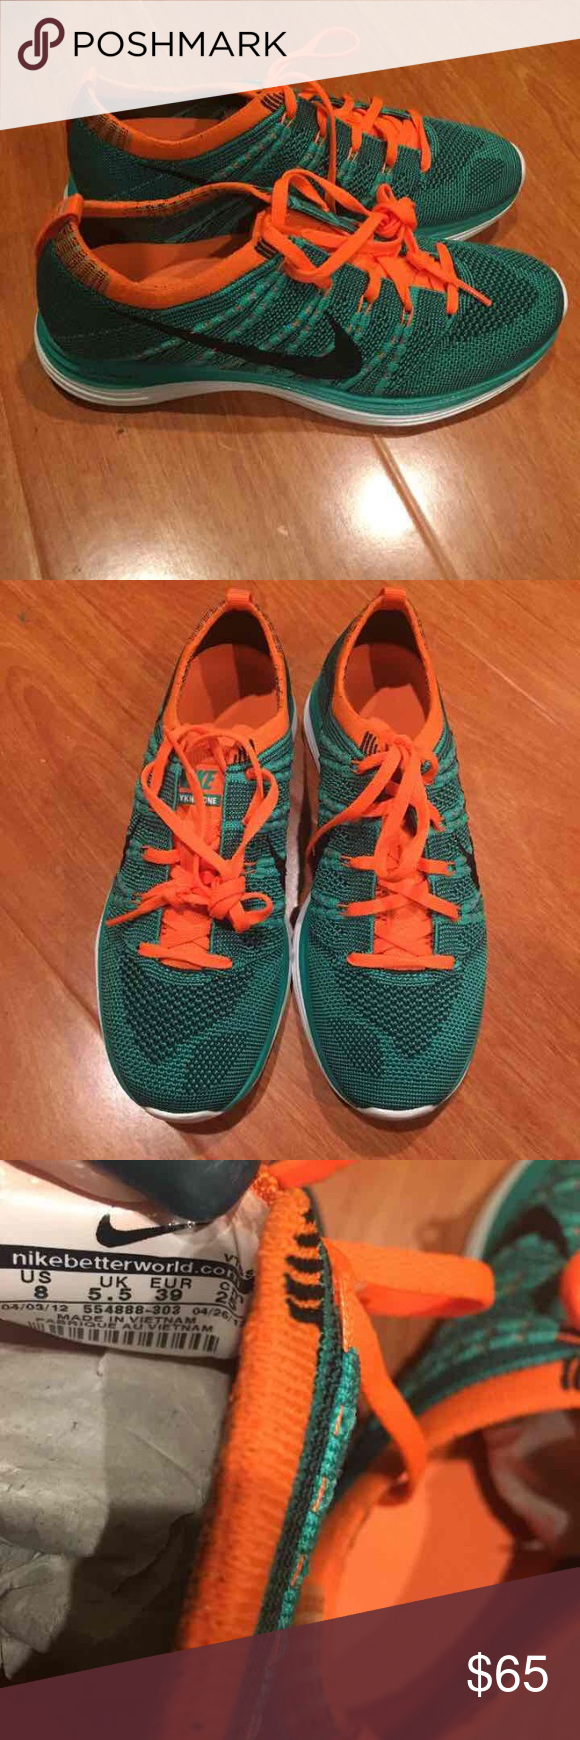 Nike fly knit Fly knit one. Teal and orange. Never worn! Size women's 8! Nike Shoes Athletic Shoes